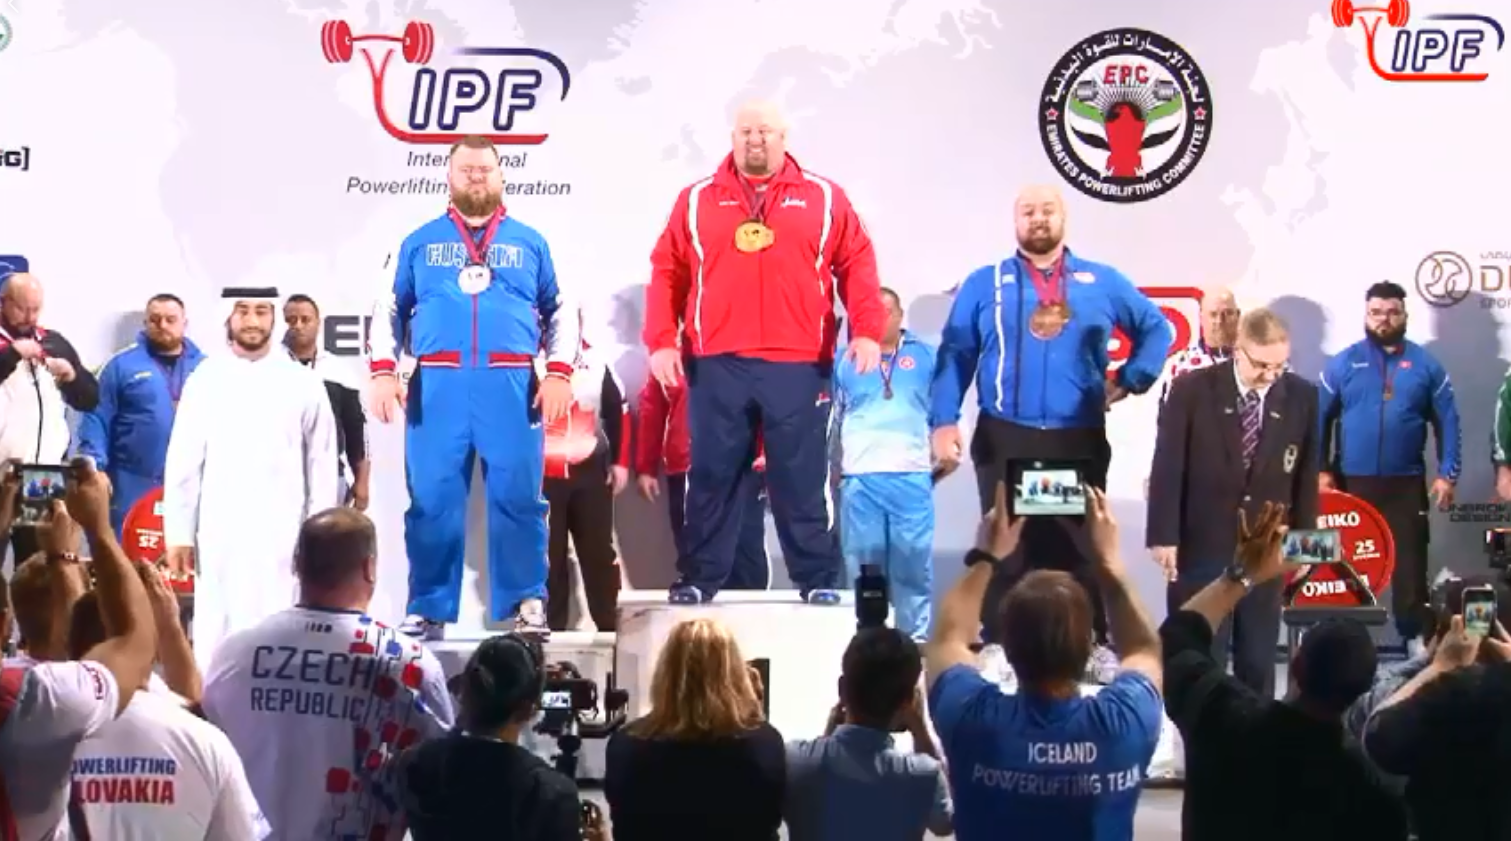 Sumner triumphs on final day of IPF World Open Powerlifting Championships